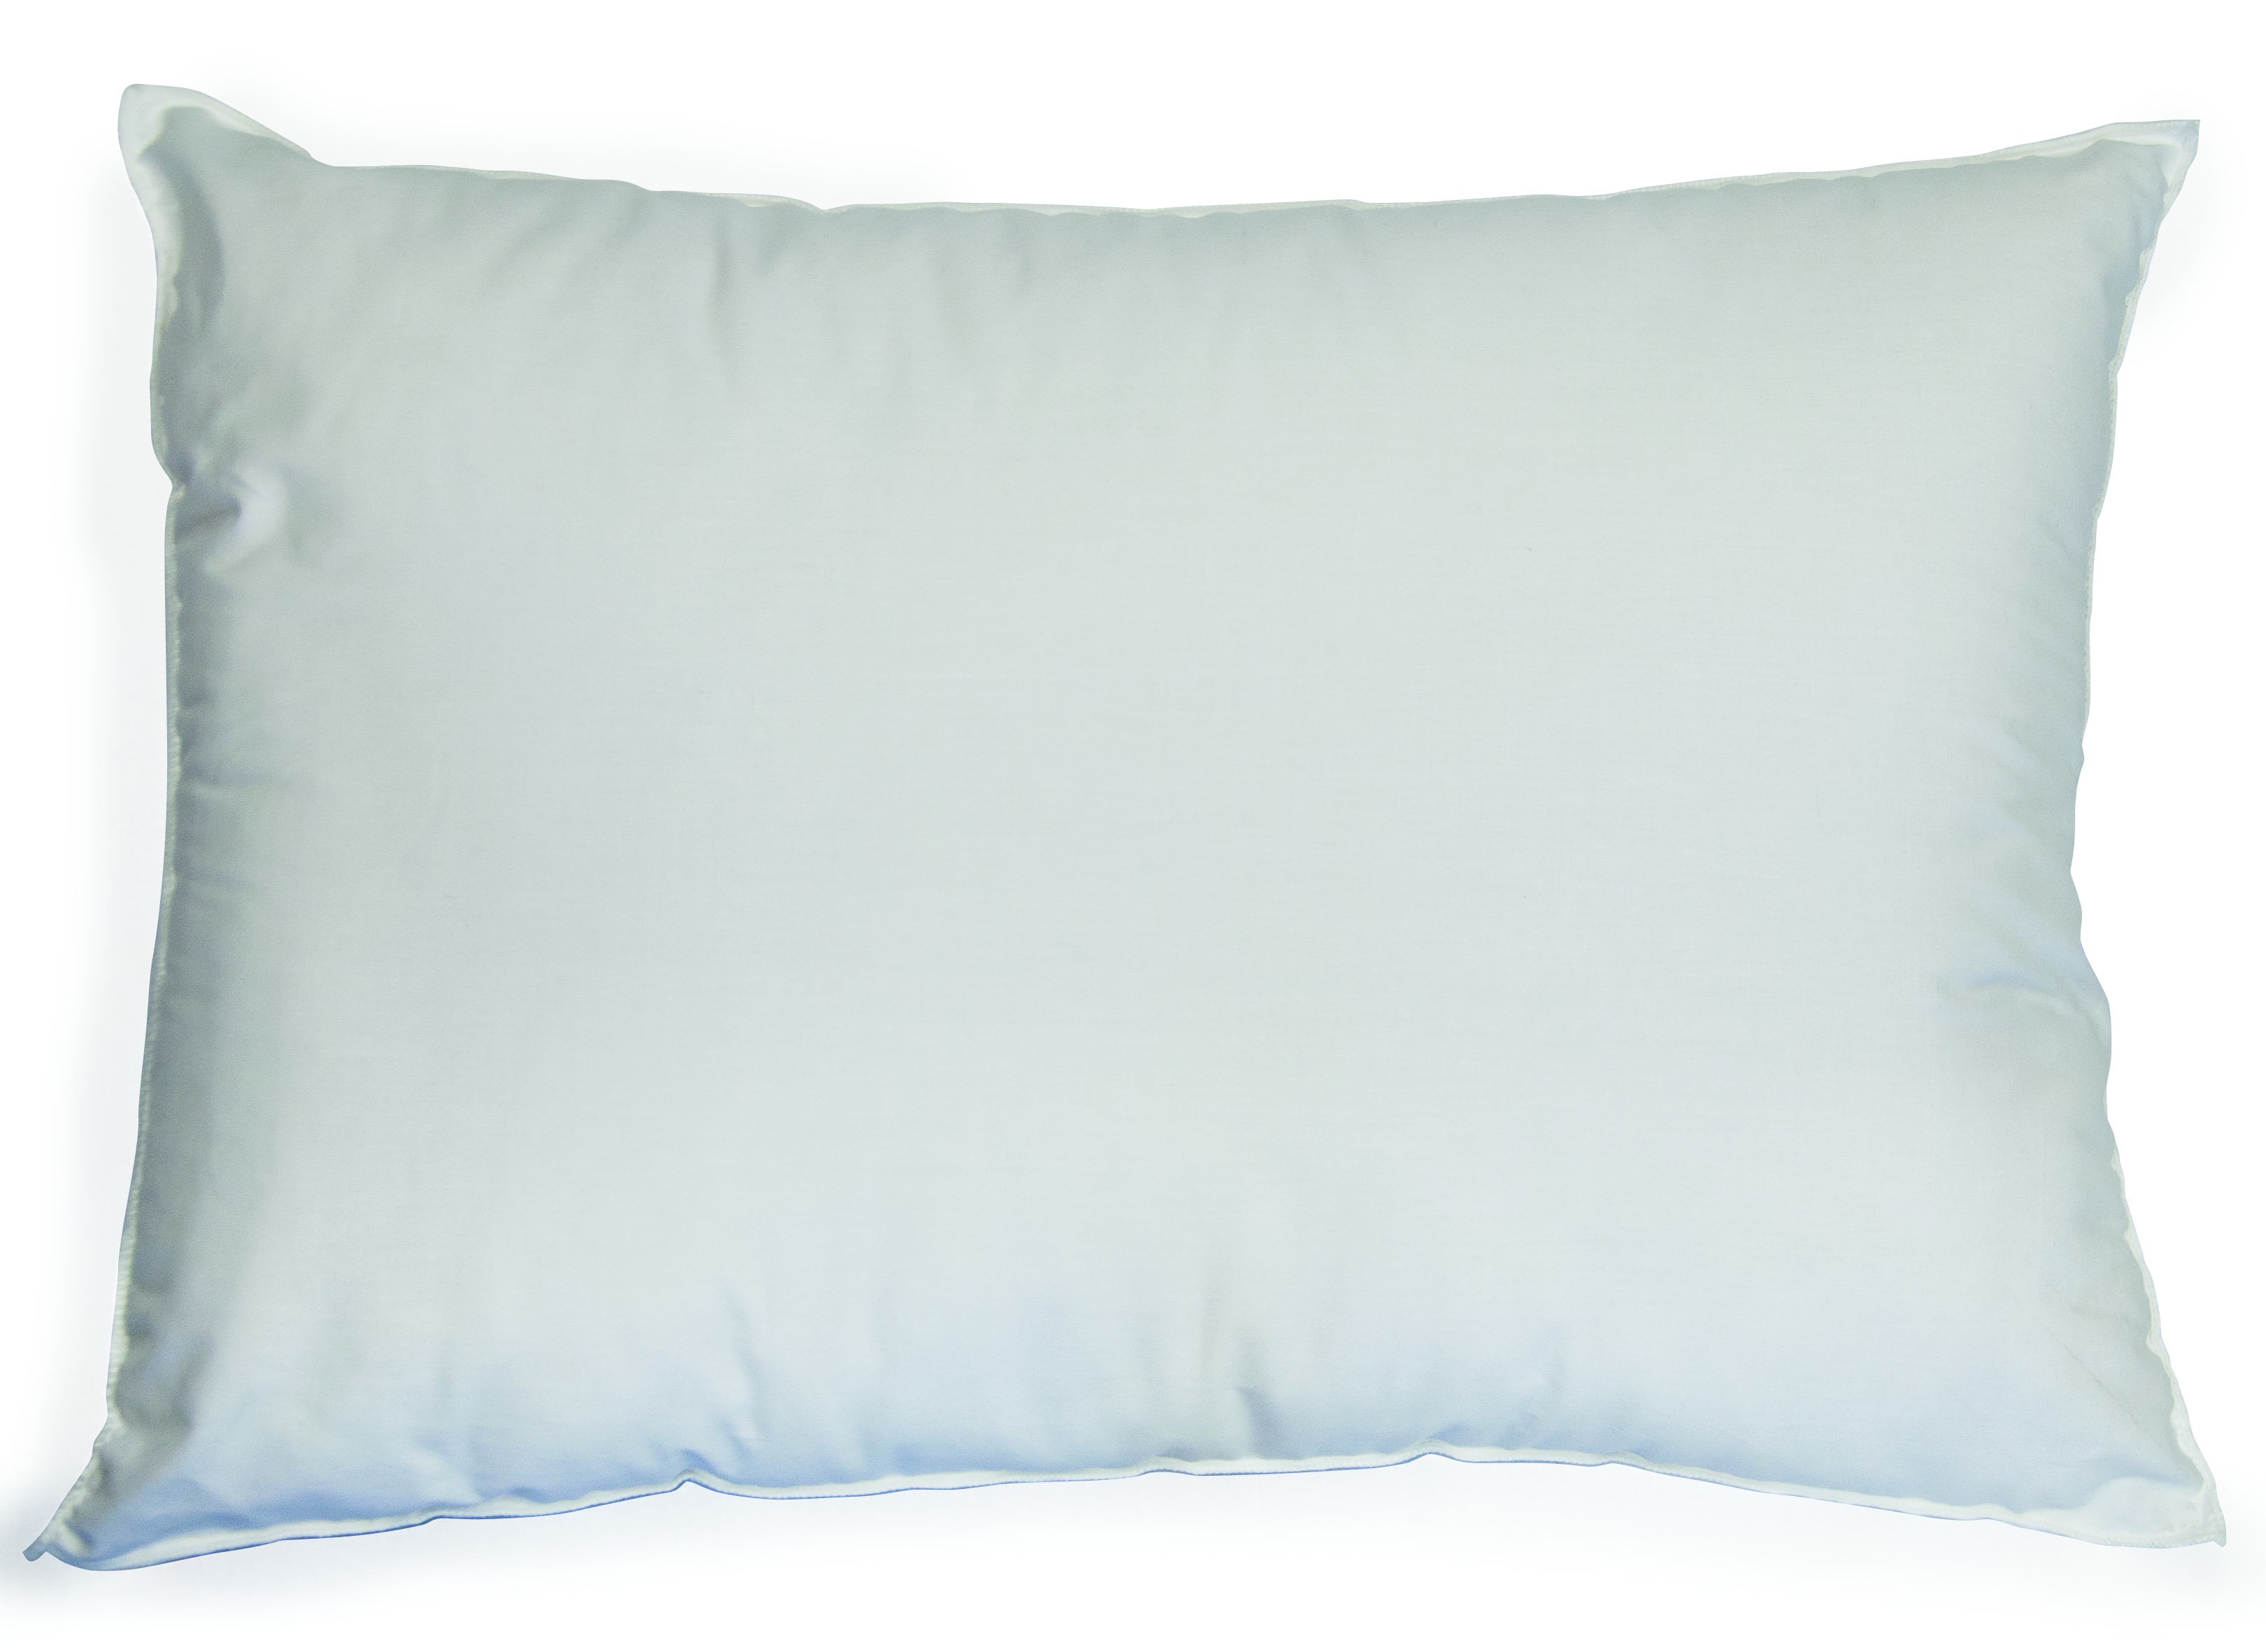 Bed Pillow, McKesson, 12 X 17 Inch White Disposable, 41-1217-M - Case of 24